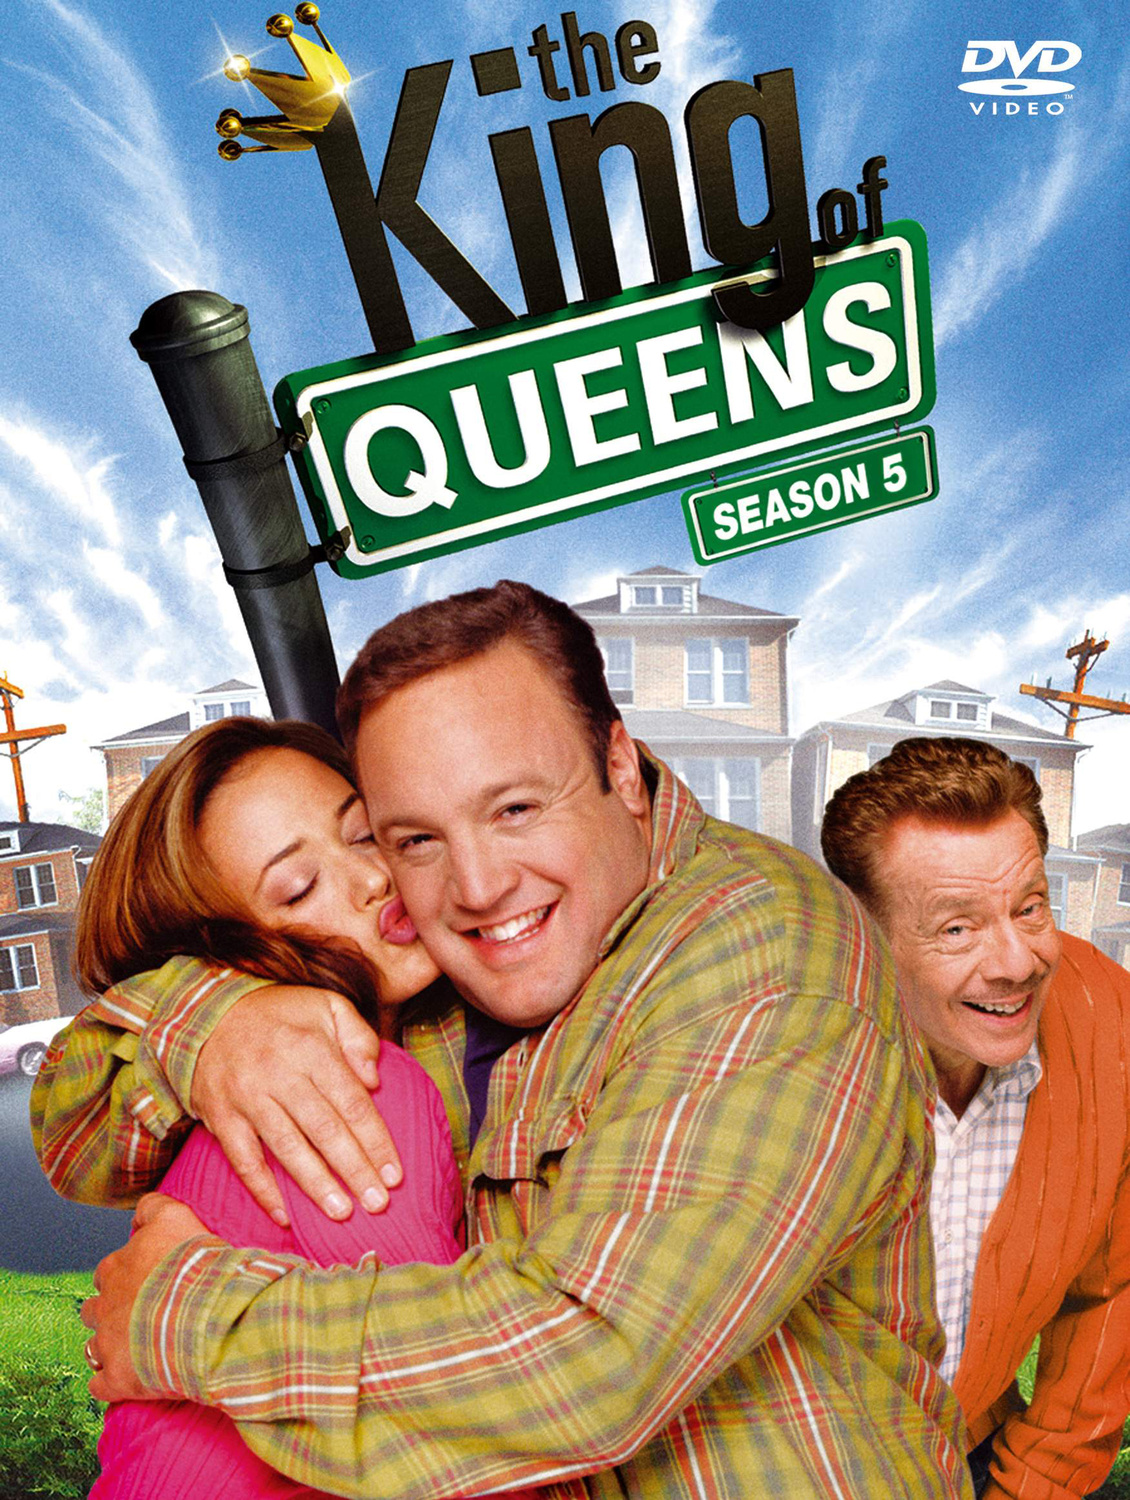 The King of Queens - Season 5 [4 DVD]